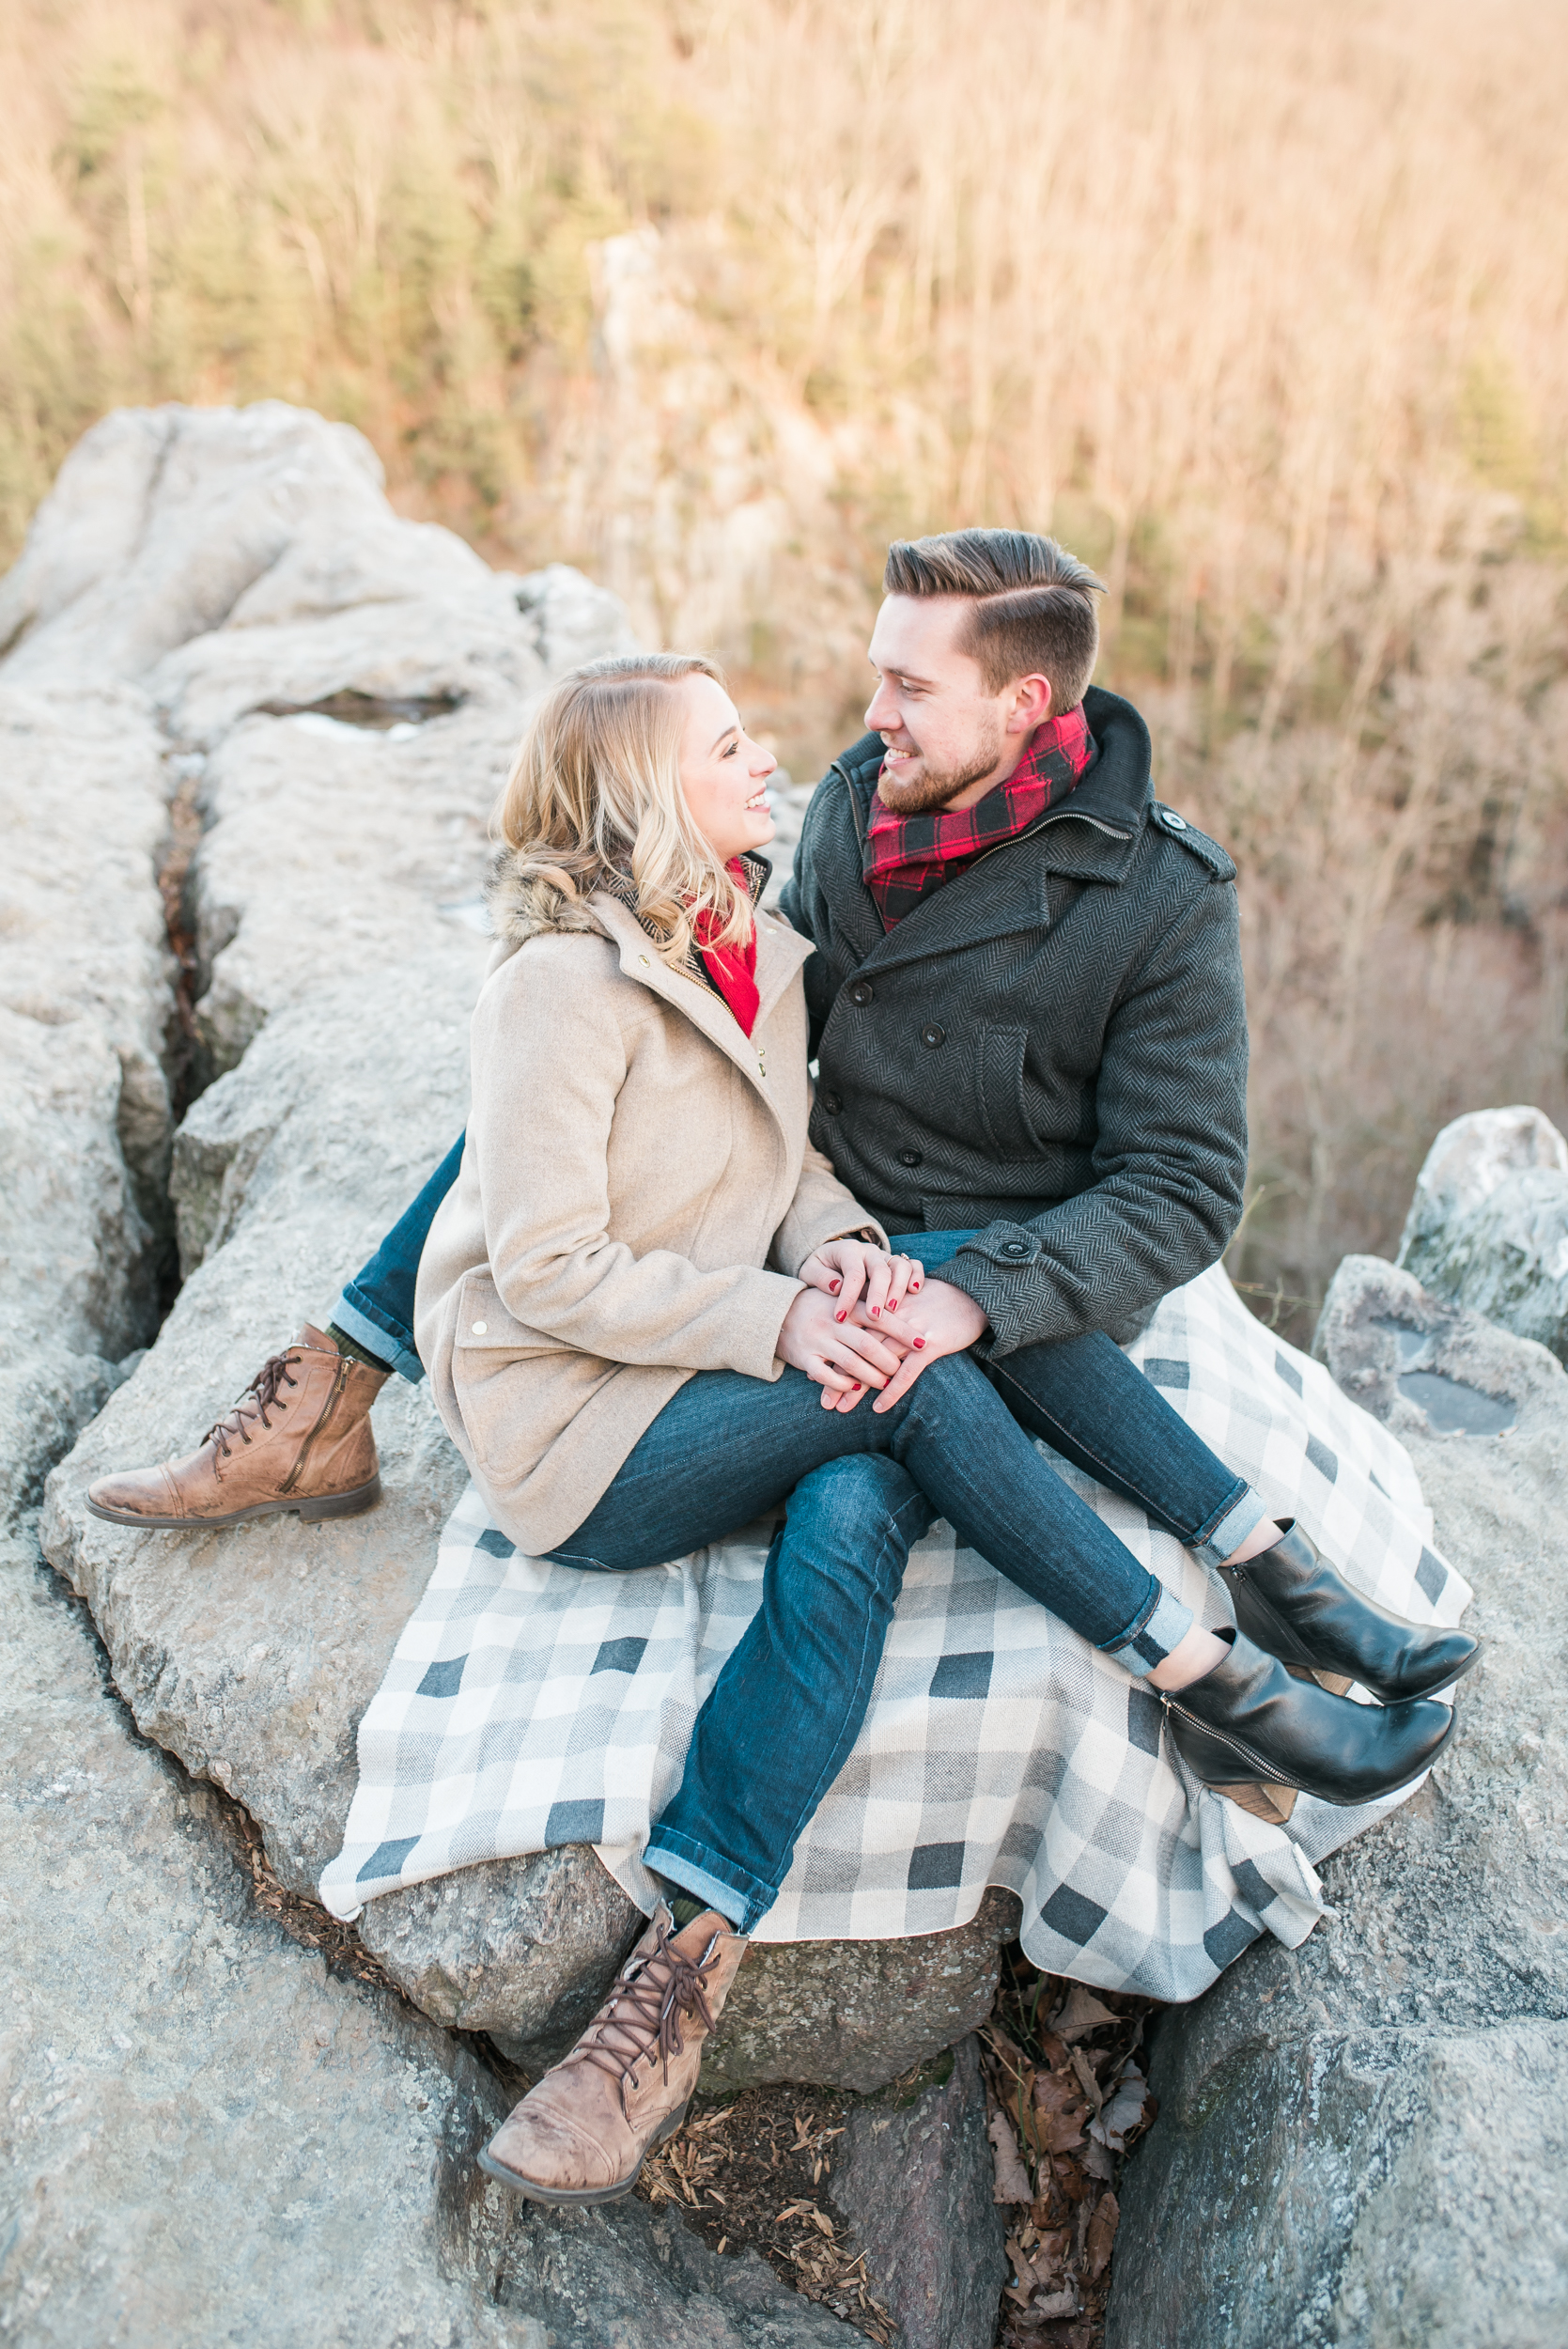 rocks-state-park-engagement-chelsea-blanch-photography-9.jpgrocks-state-park-engagement-chelsea-blanch-photography-1.jpgrocks-state-park-engagement-chelsea-blanch-photography-10